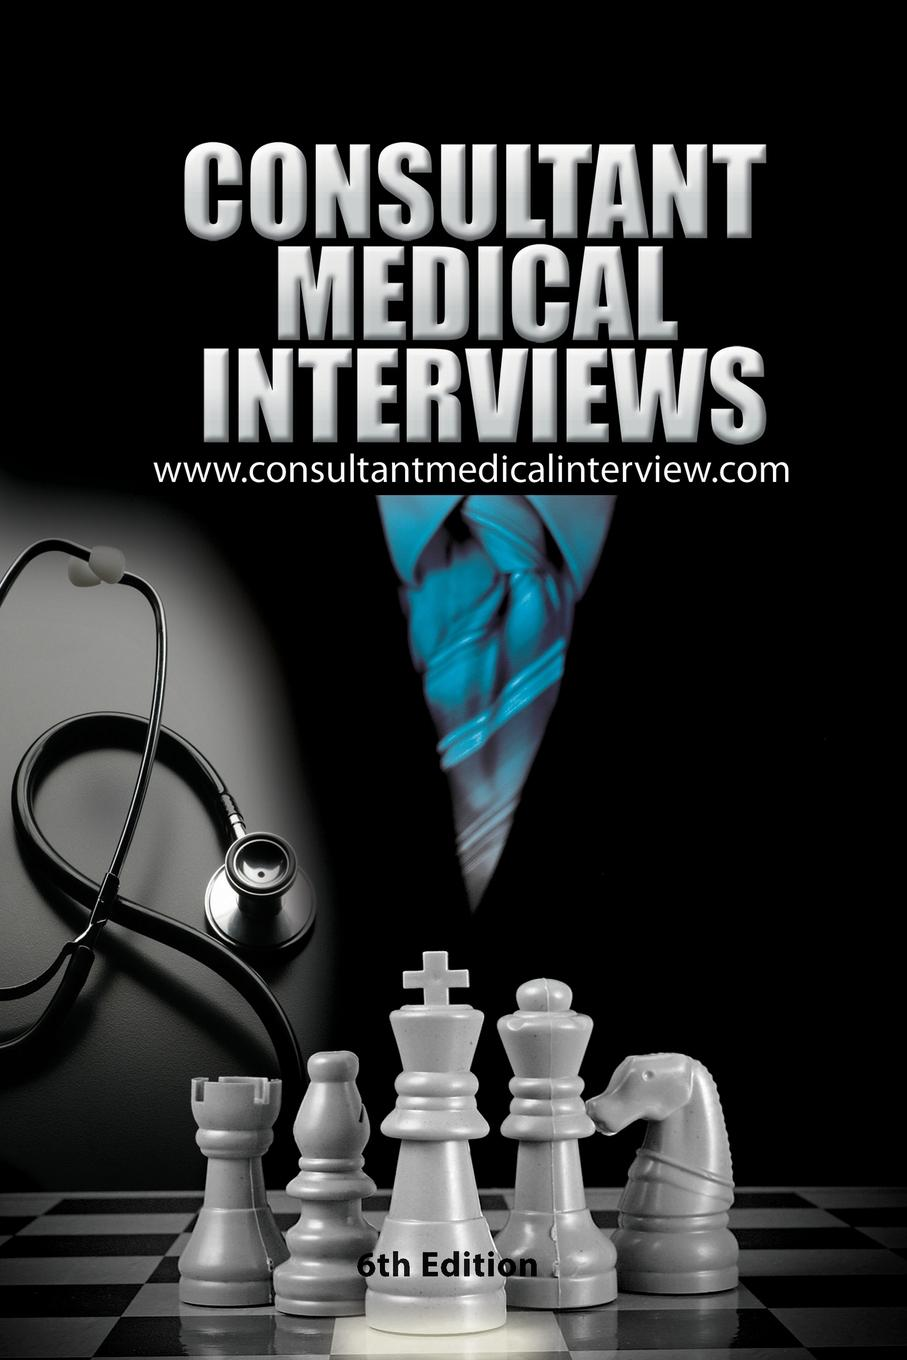 Consultantmedicalinterview .com Consultant Medical Interviews цена